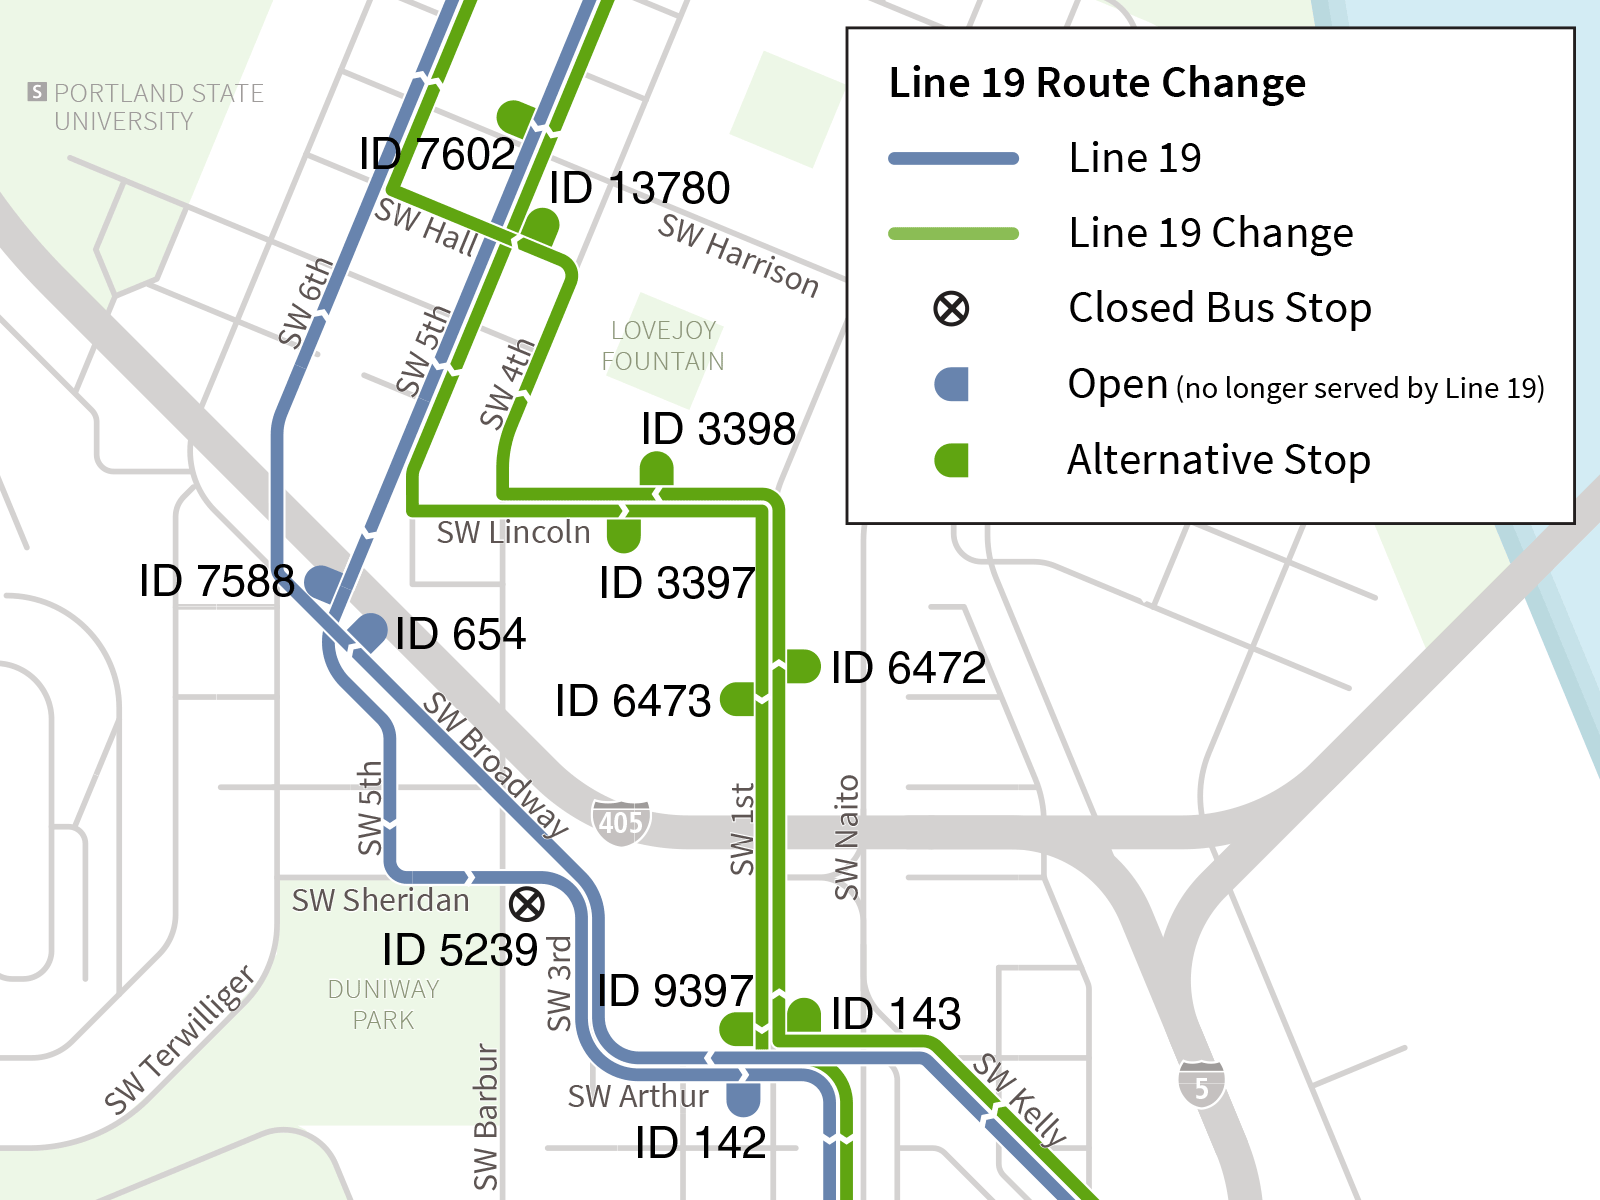 Line 19 proposed change